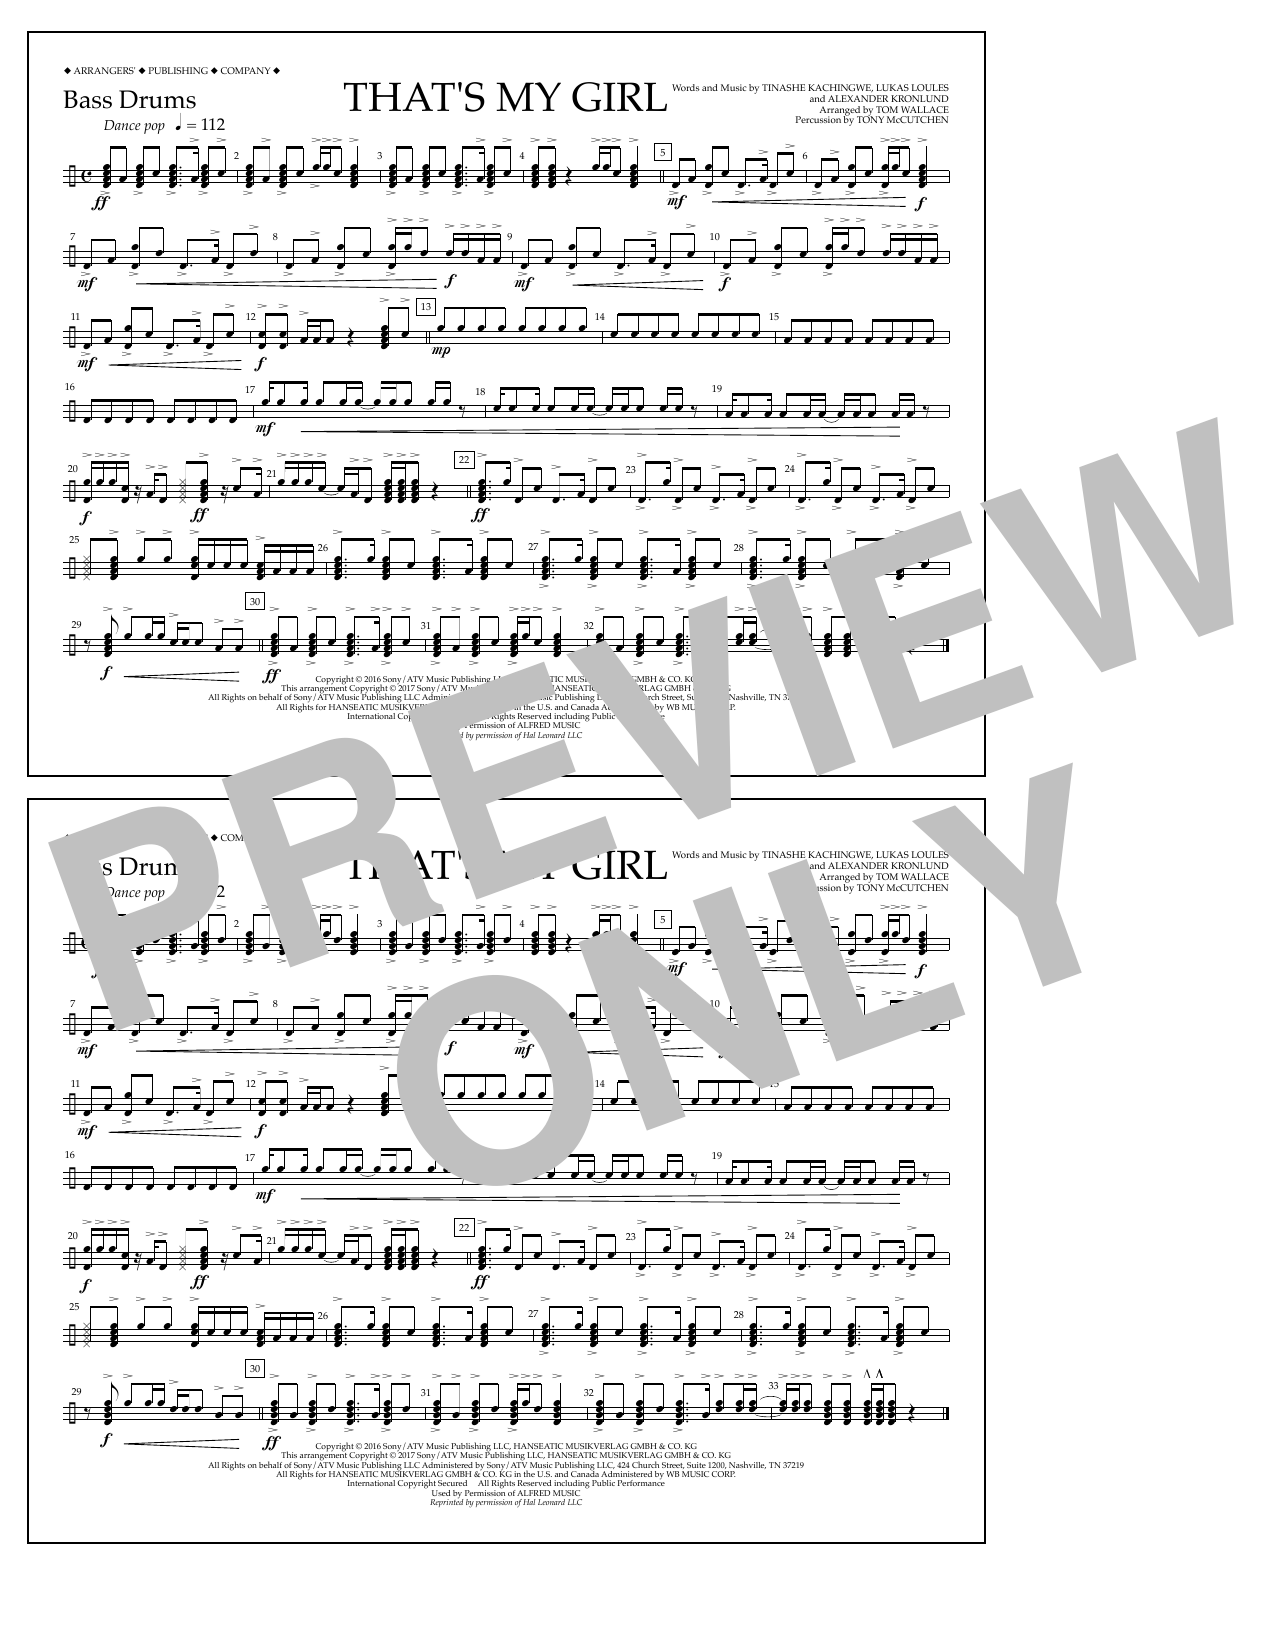 That's My Girl - Bass Drums Partition Digitale